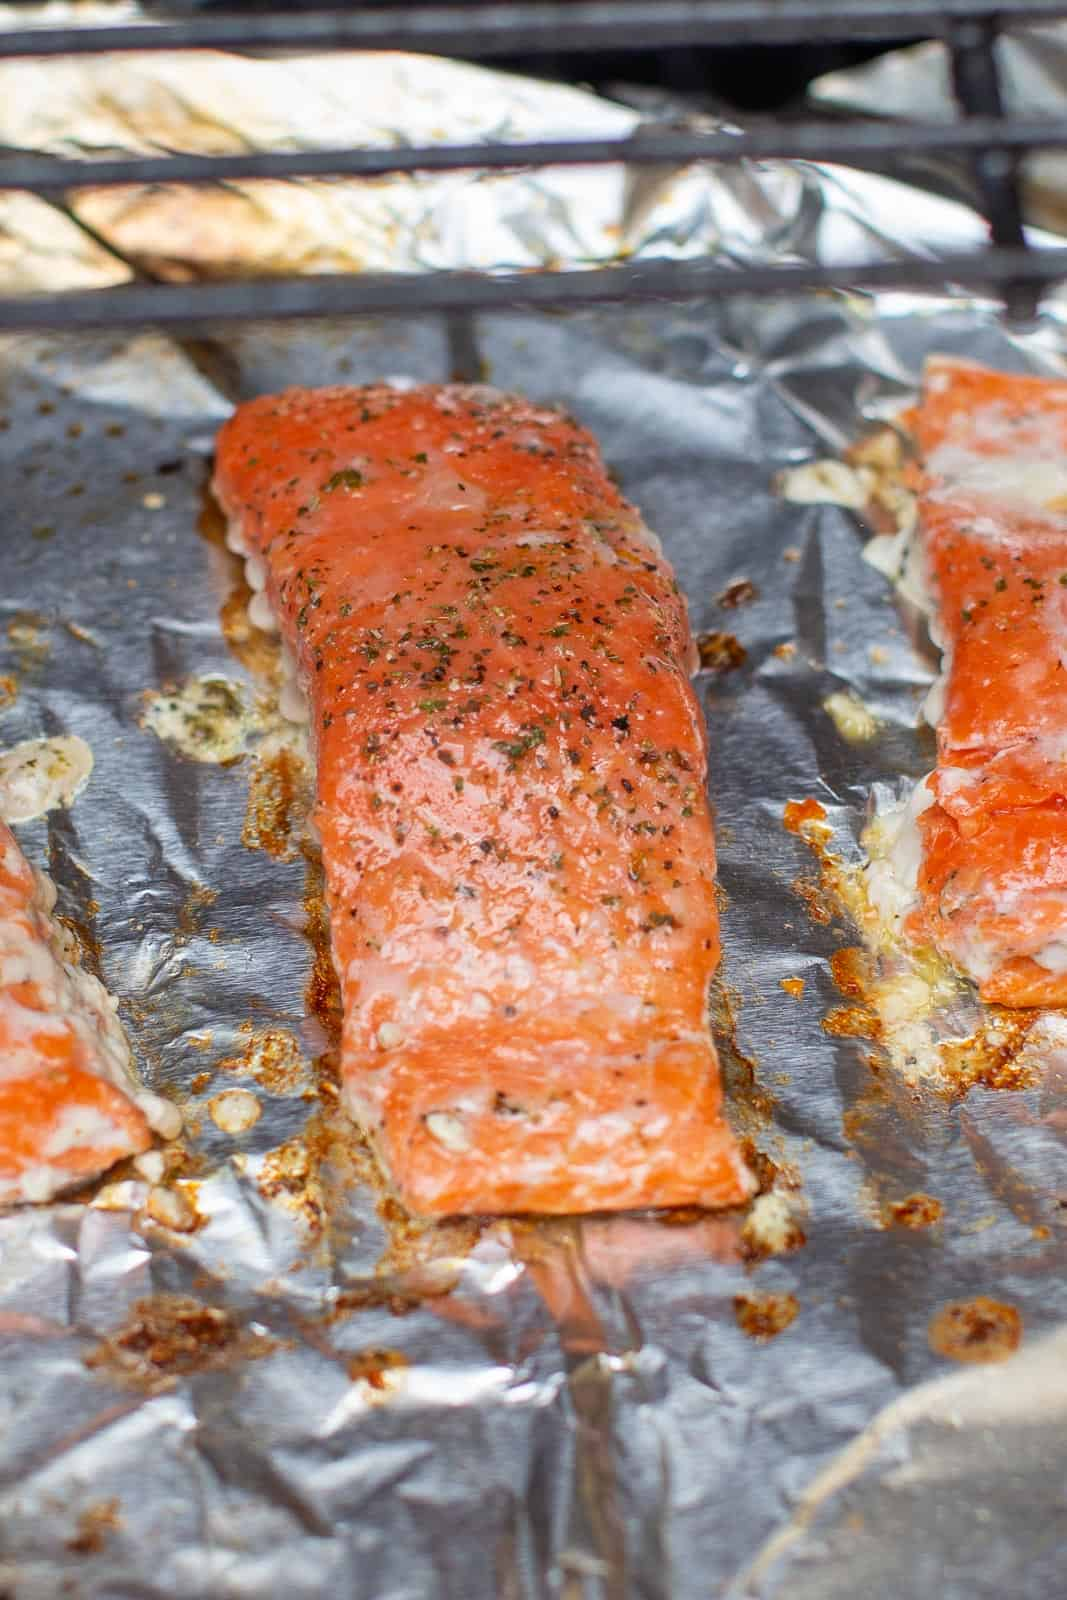 three pieces of salmon cooking on grill